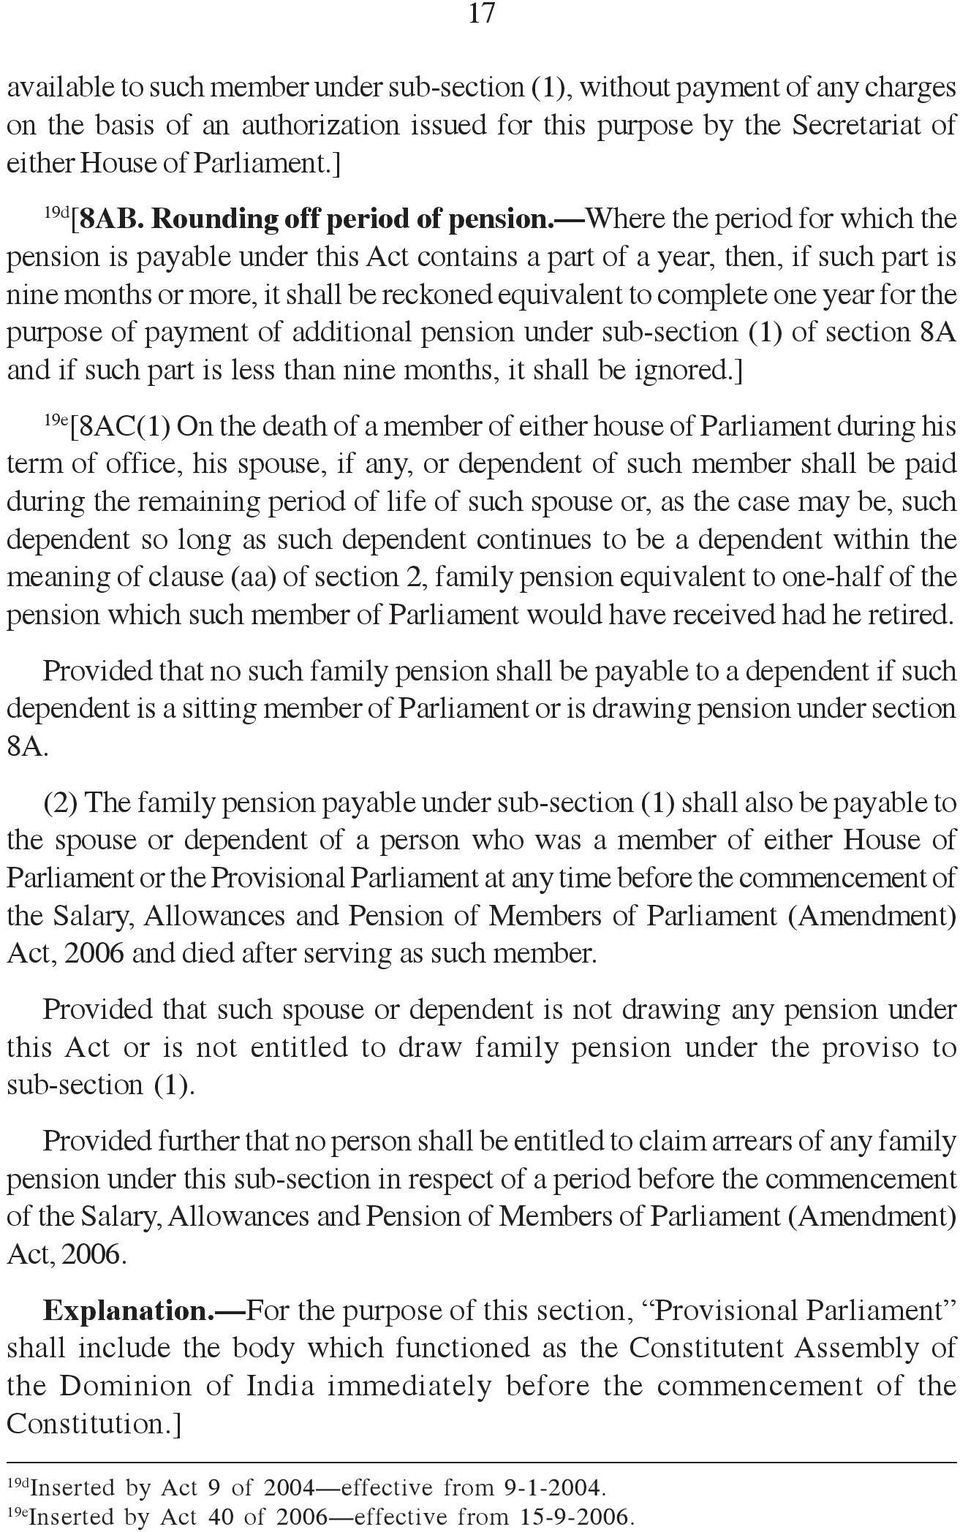 Where the period for which the pension is payable under this Act contains a part of a year, then, if such part is nine months or more, it shall be reckoned equivalent to complete one year for the